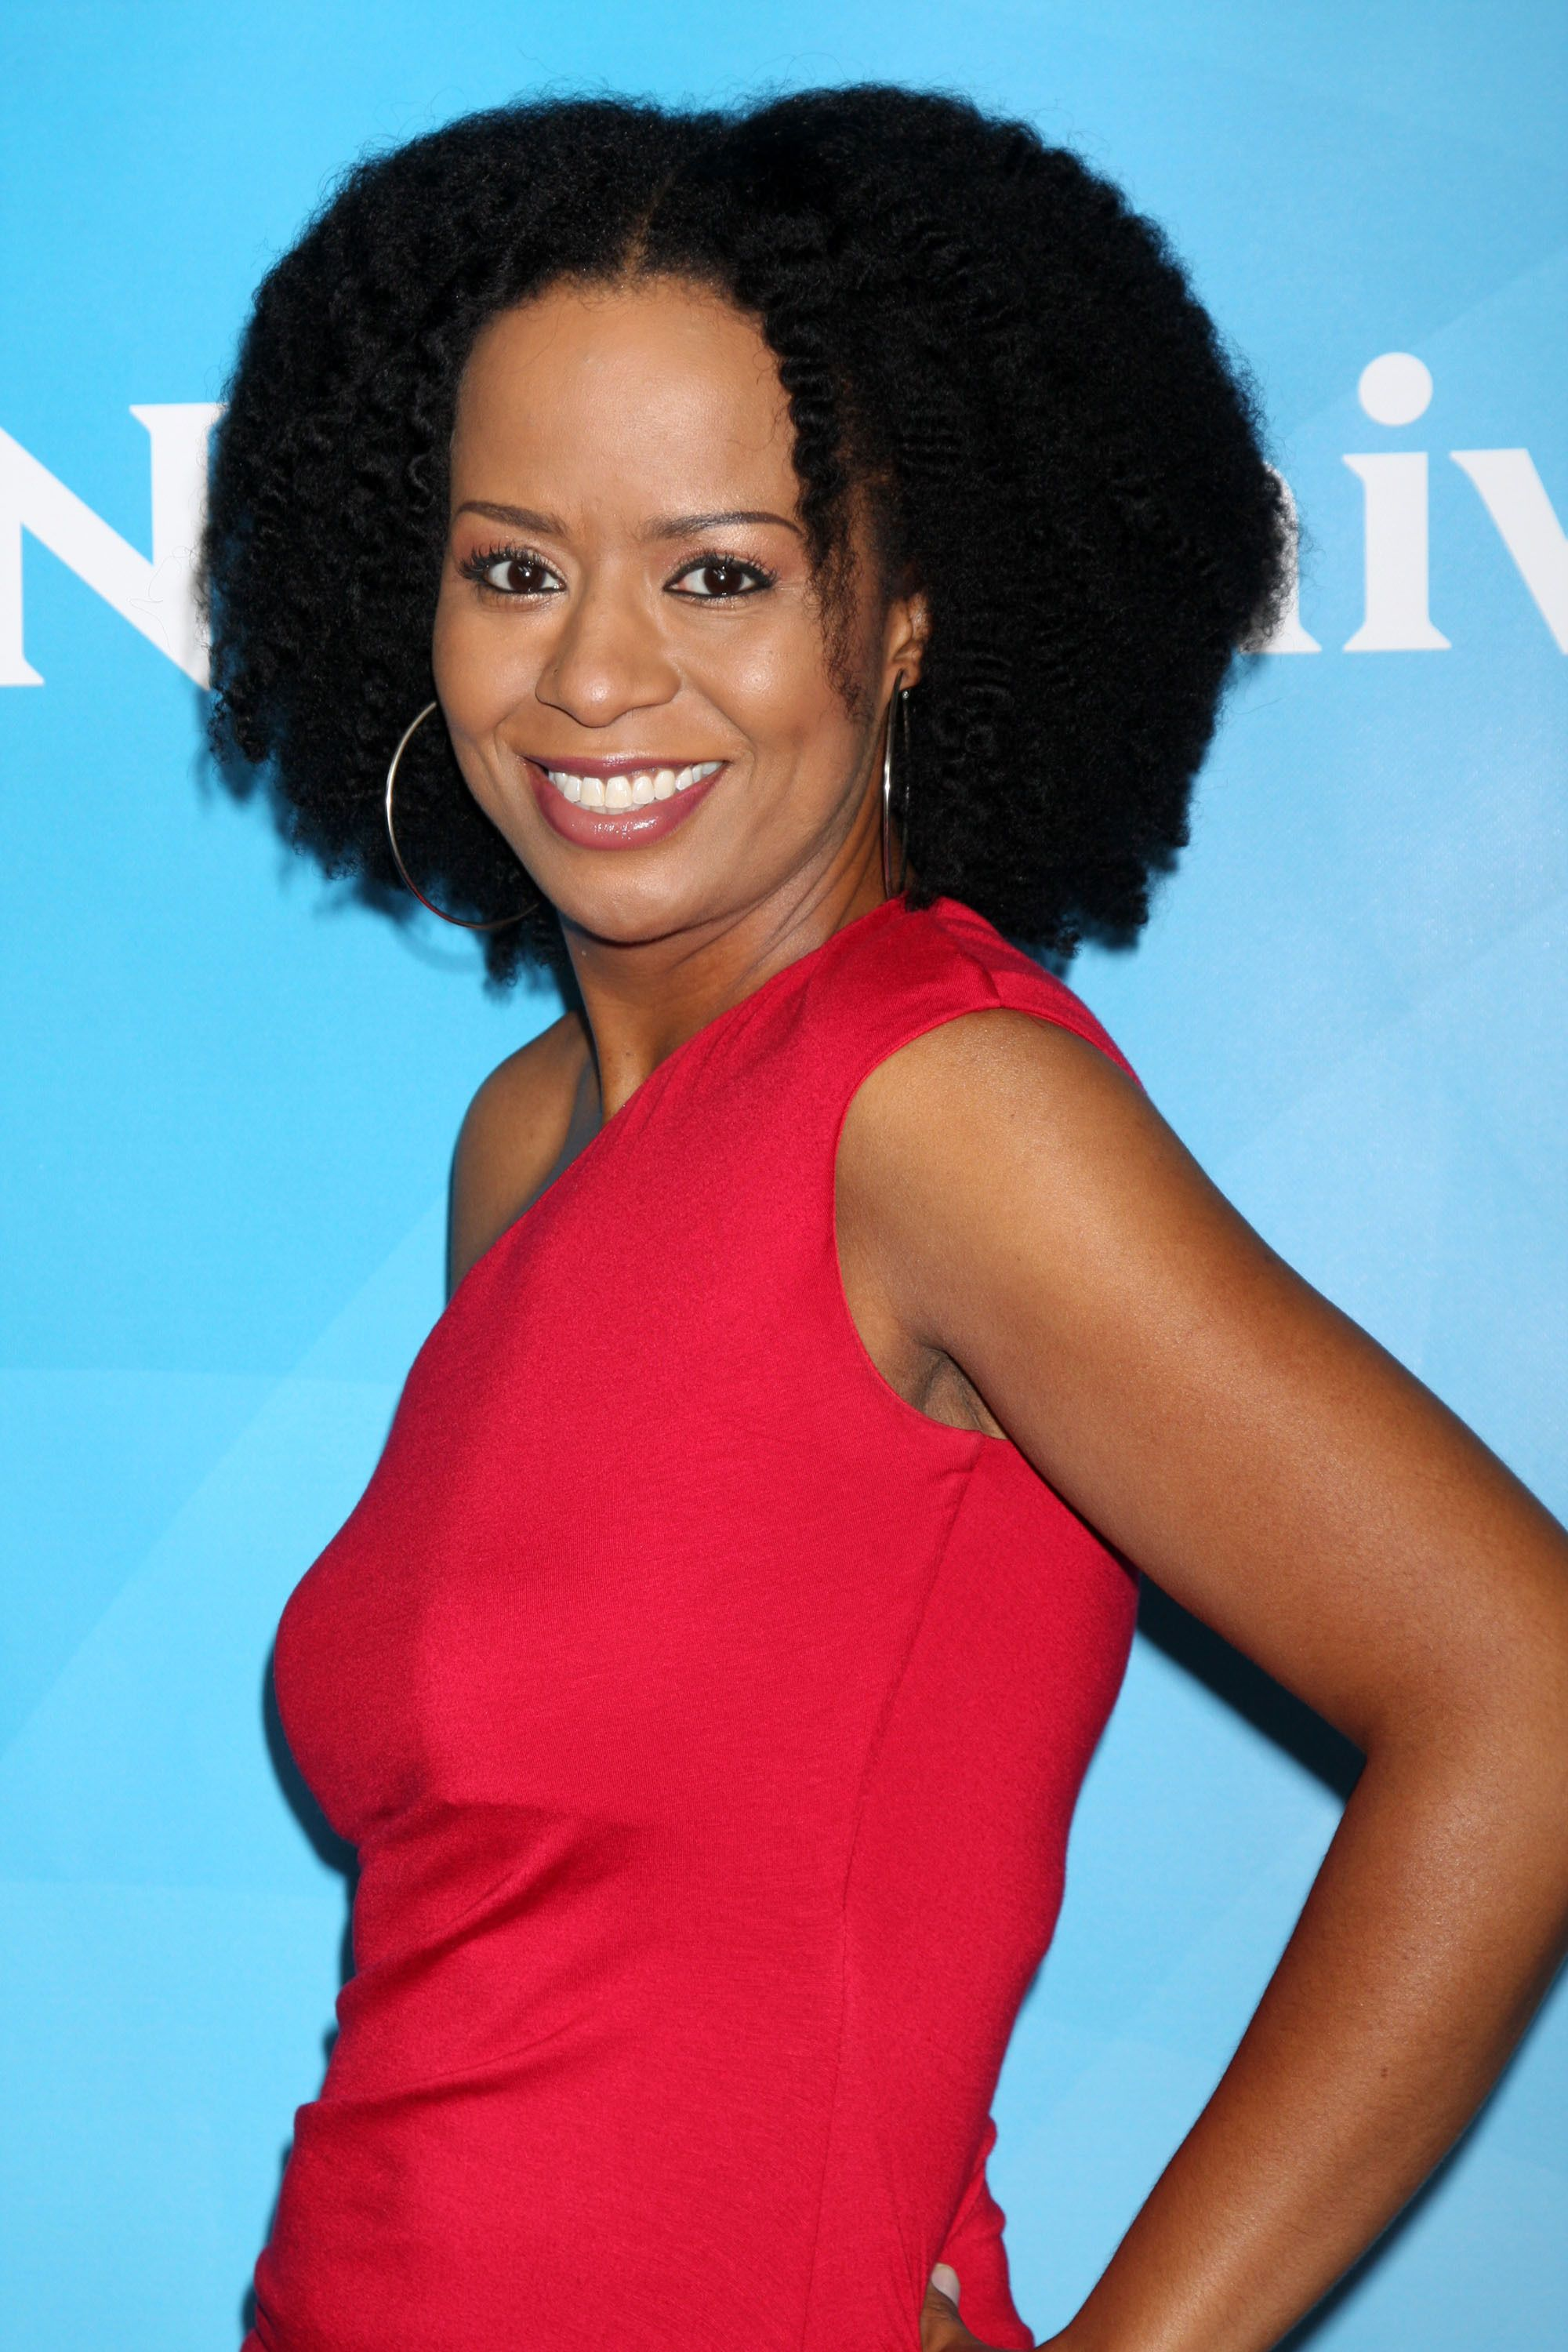 Tempest Bledsoe S Natural Hair Gives Her A Youthful Look